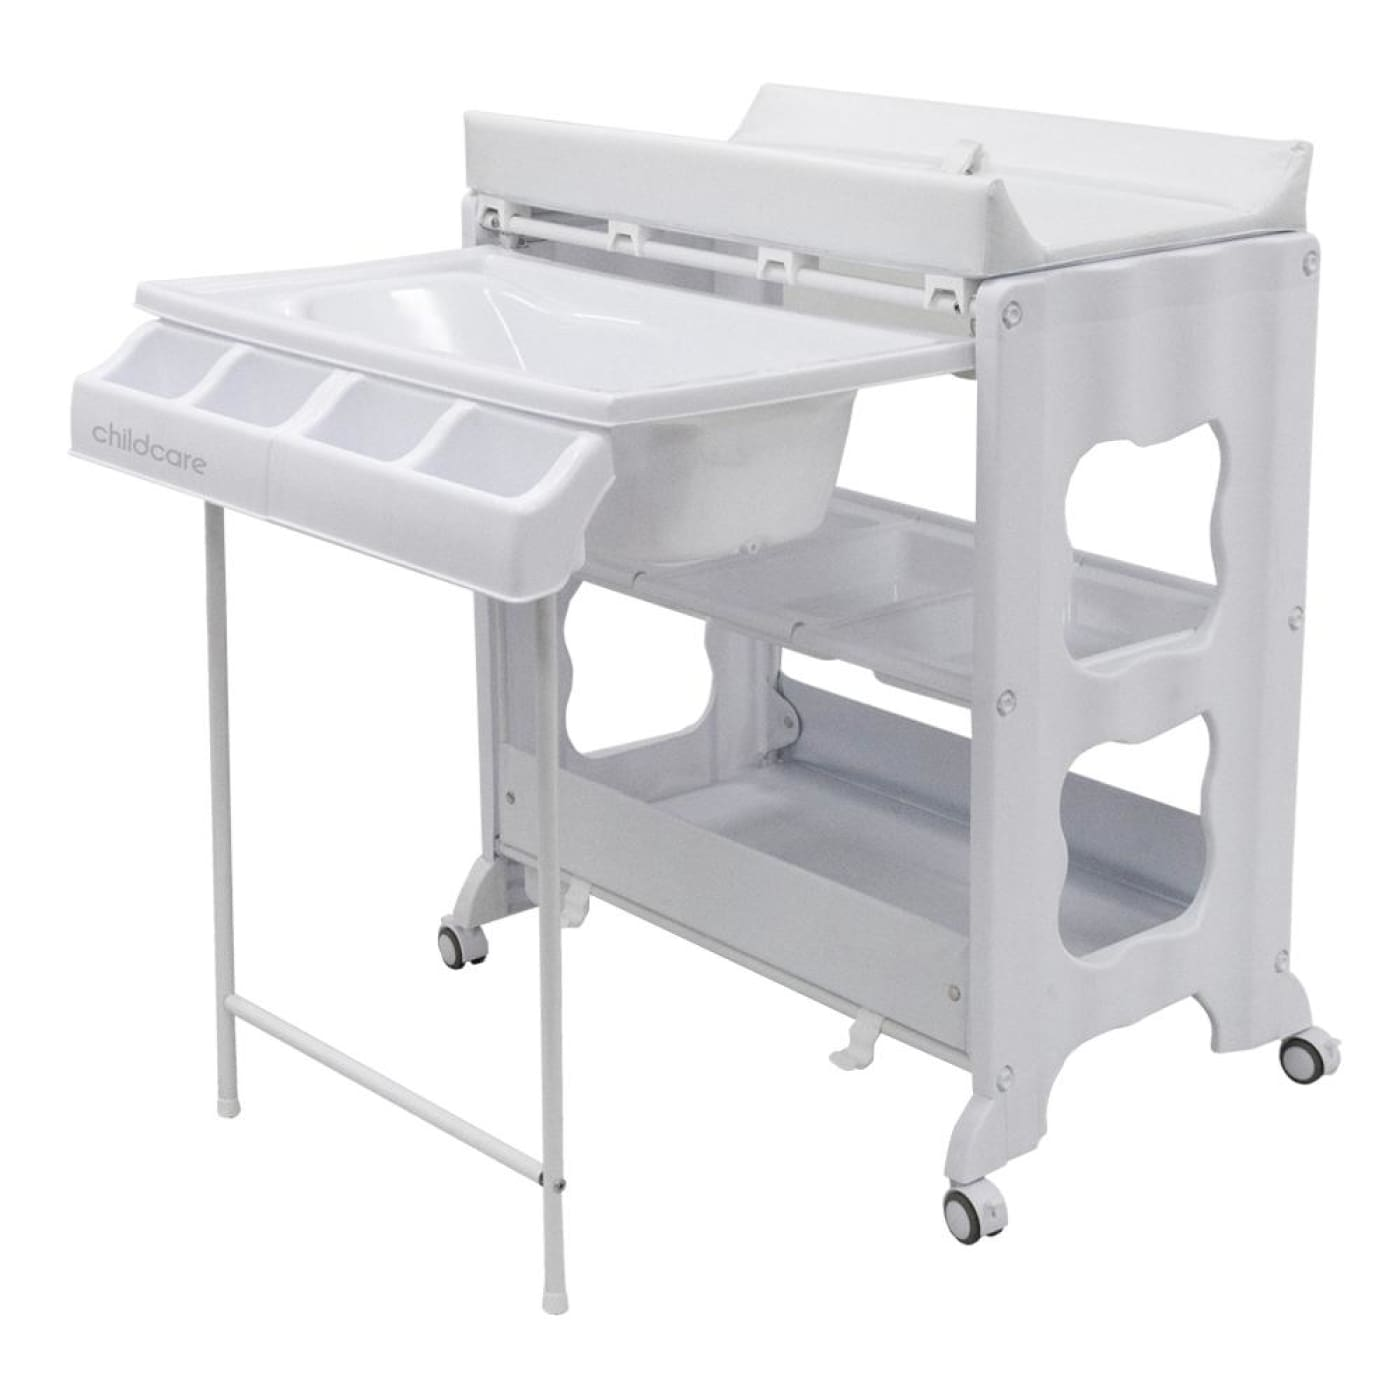 Childcare Montana Change Centre - White - White - BATHTIME & CHANGING - BATH/BATH STANDS